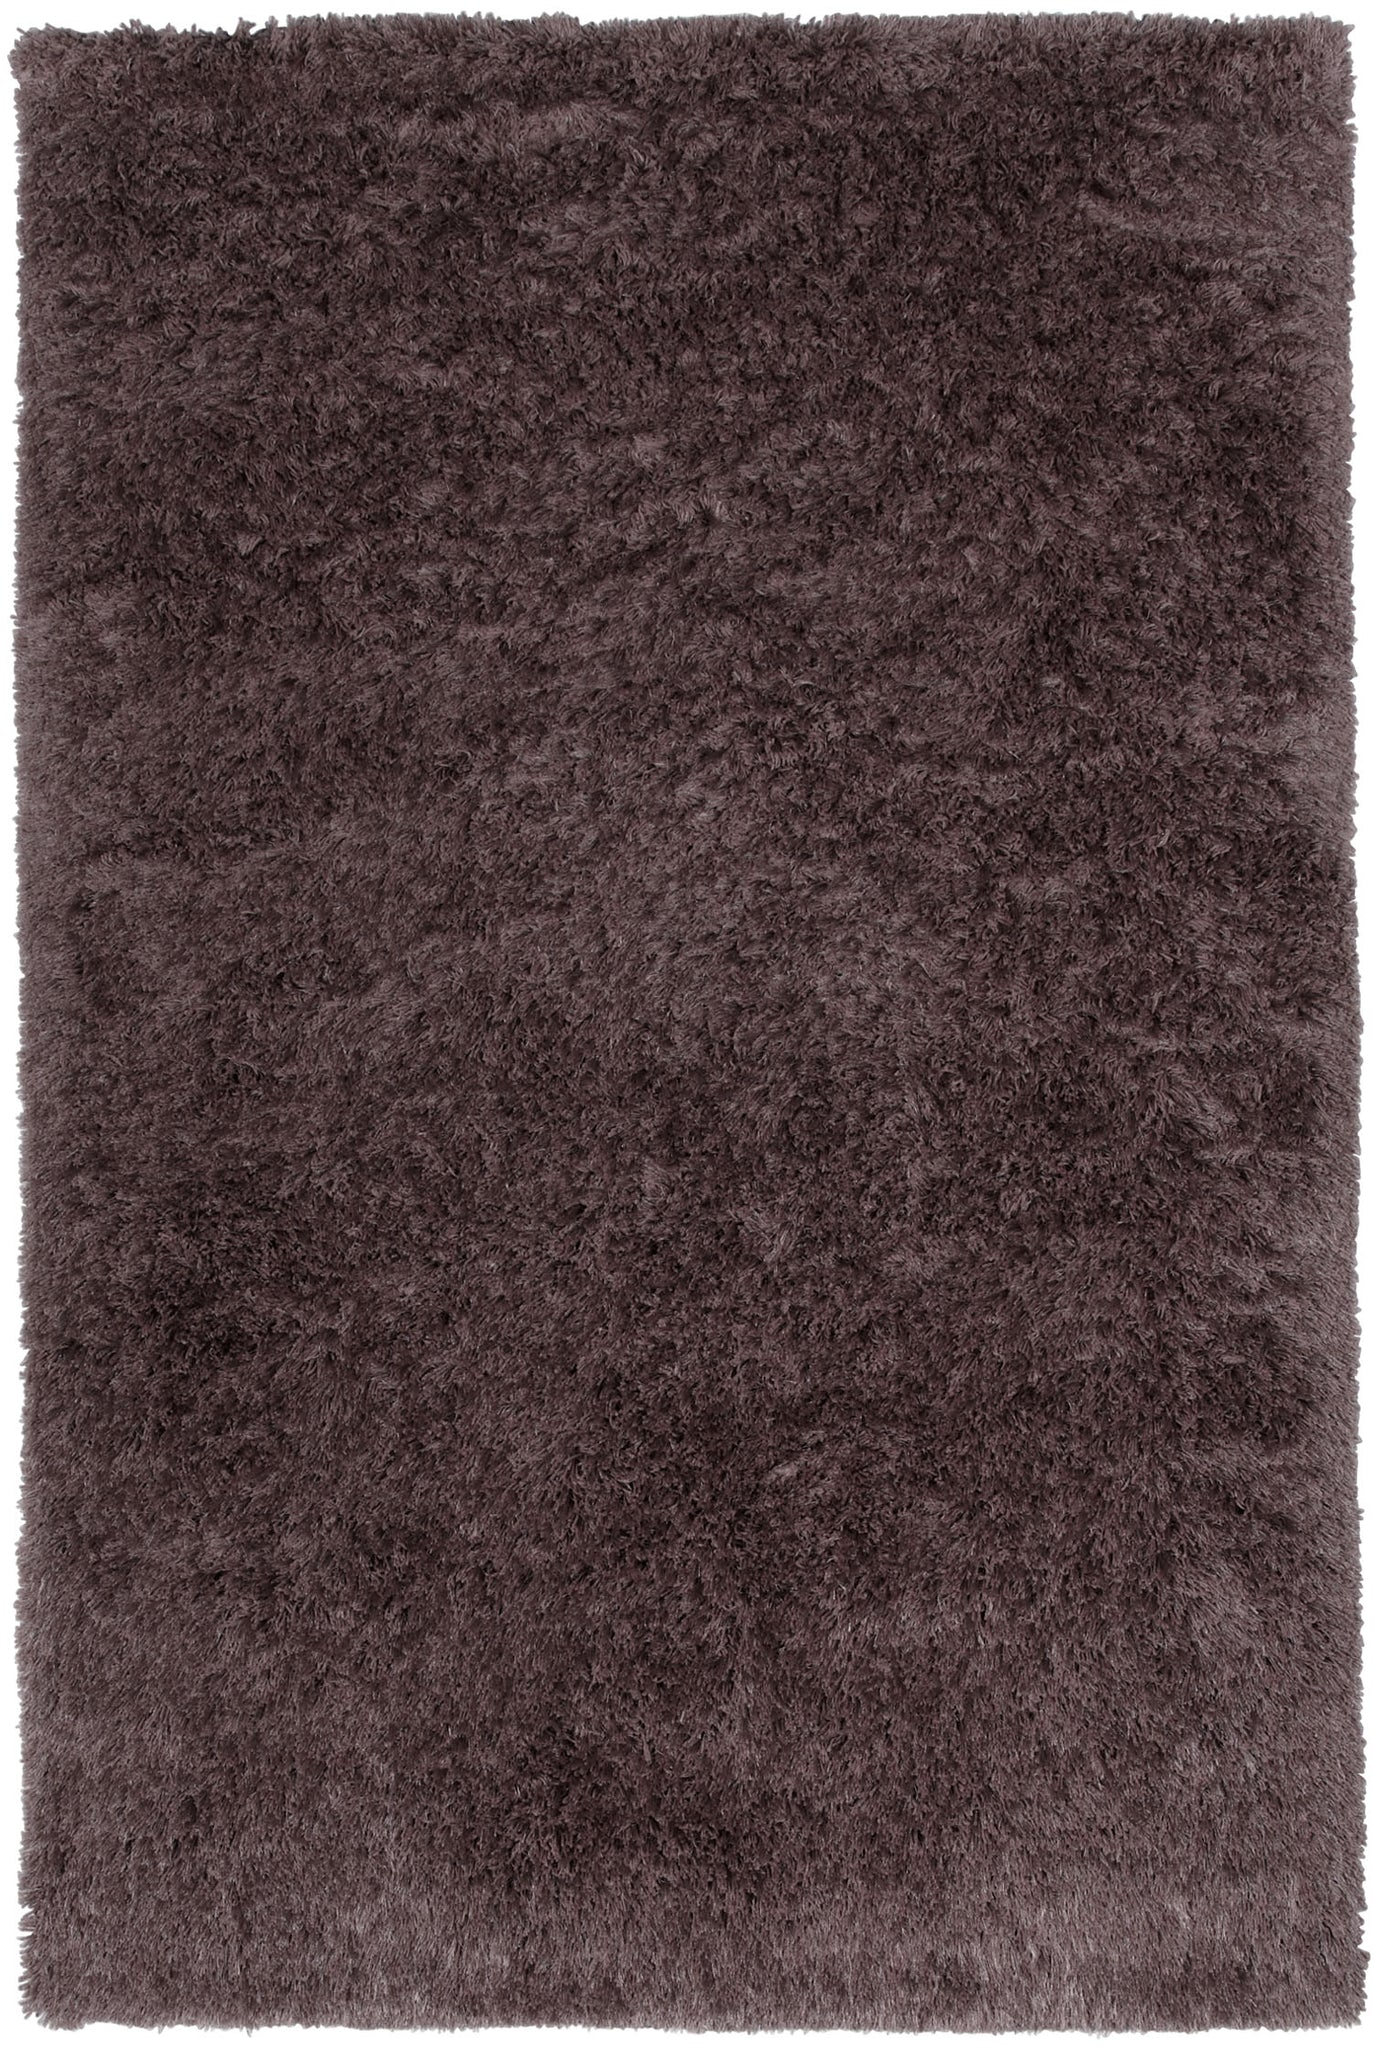 Capel Trolley Line 3250 Light Purple 400 Area Rug main image